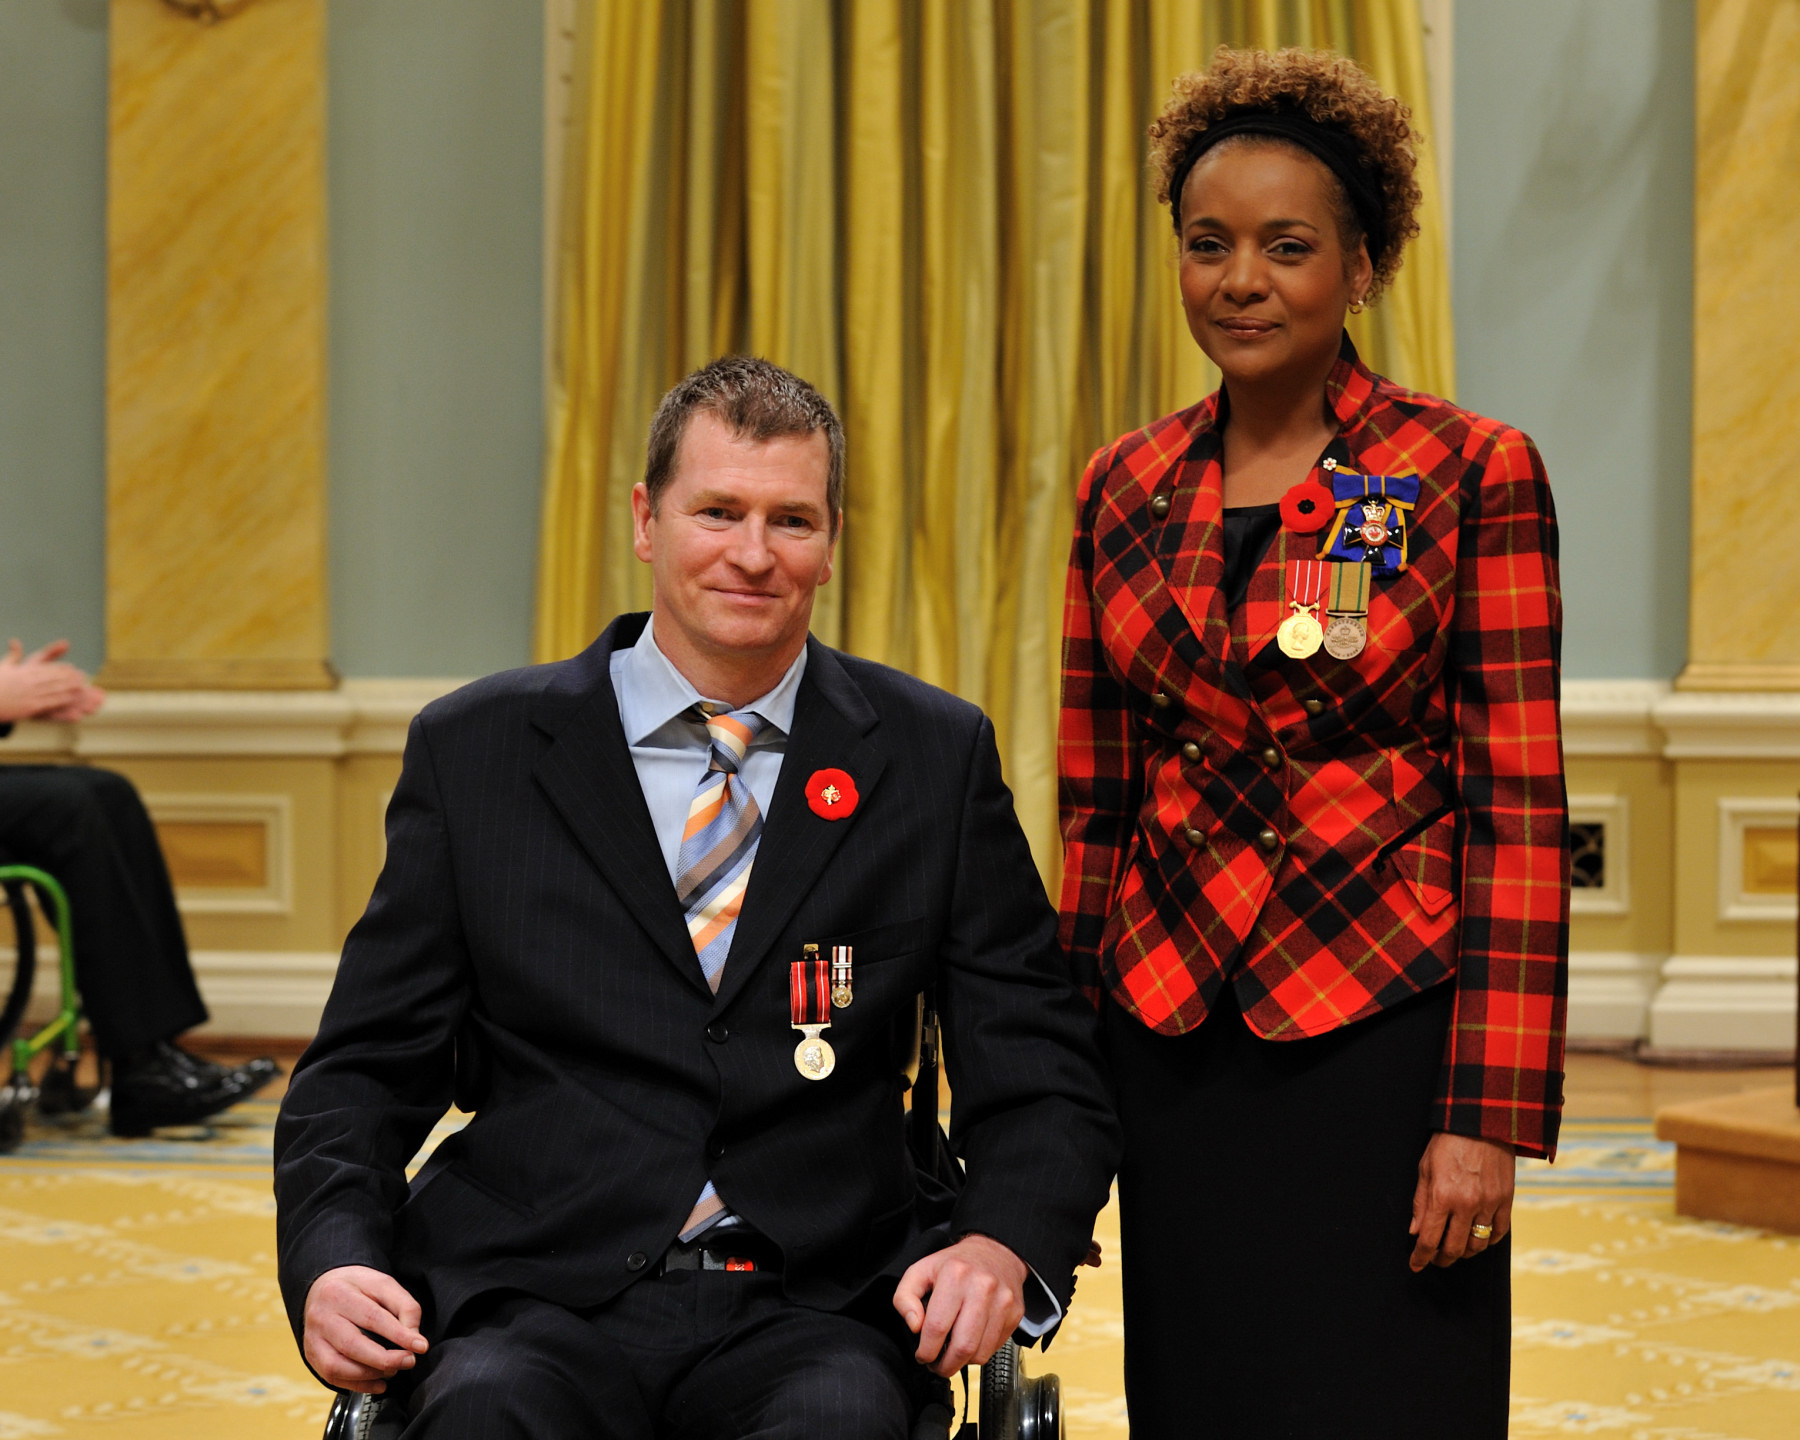 Her Excellency the Right Honourable Michaëlle Jean, Commander-in-Chief of Canada, presented the Sacrifice Medal to Captain Charles Trevor Greene.